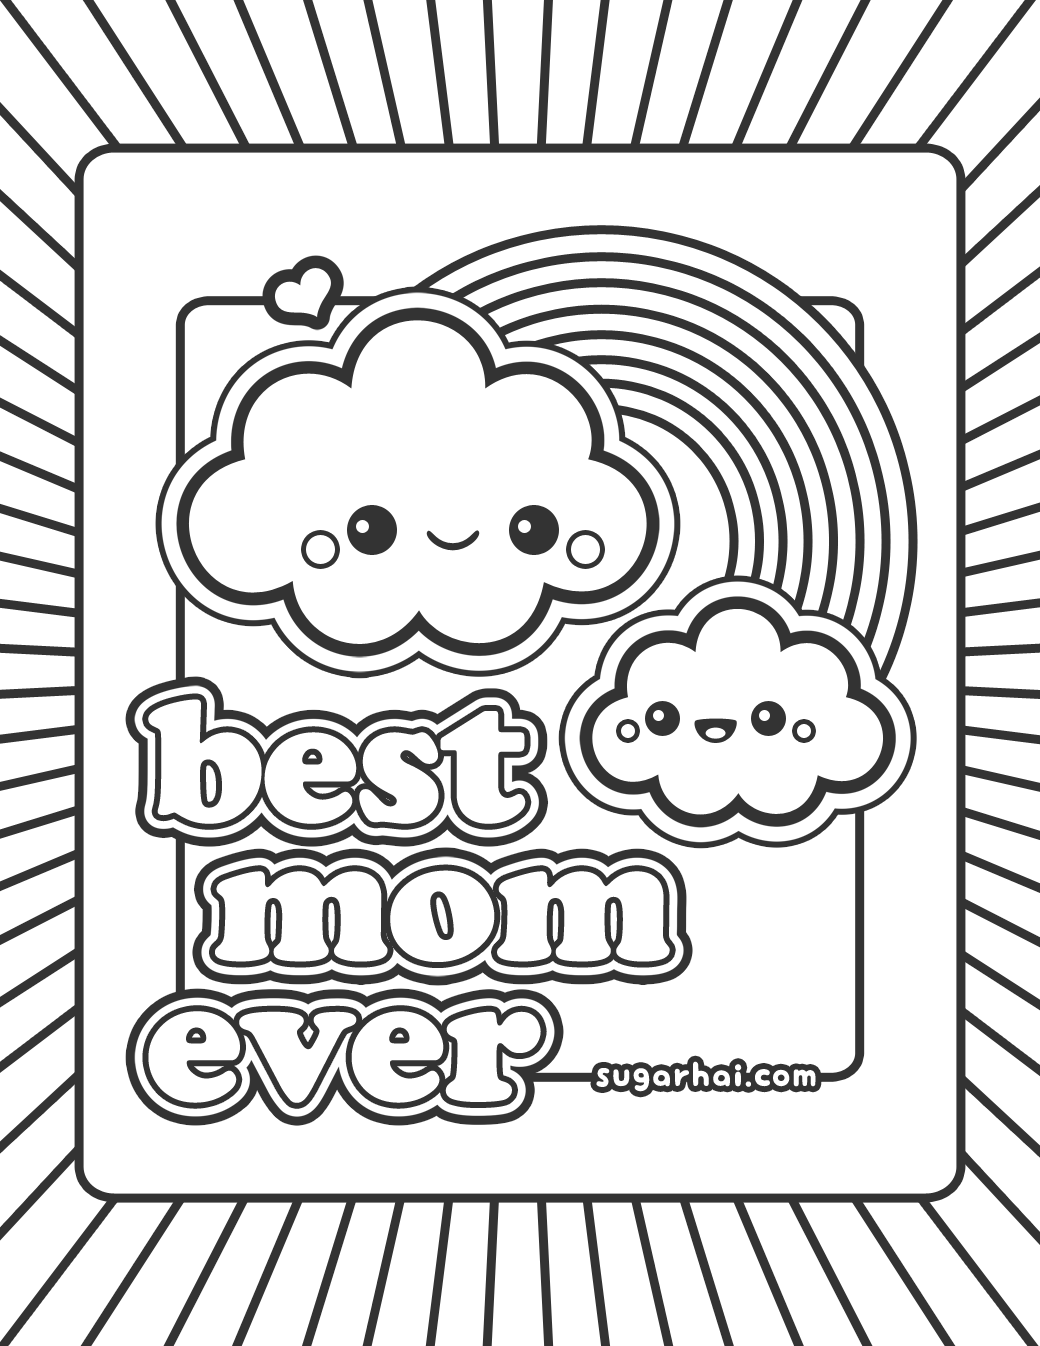 Free Best Mom Ever Coloring Page | Mom coloring pages, Halloween coloring  pages, Mothers day coloring pages